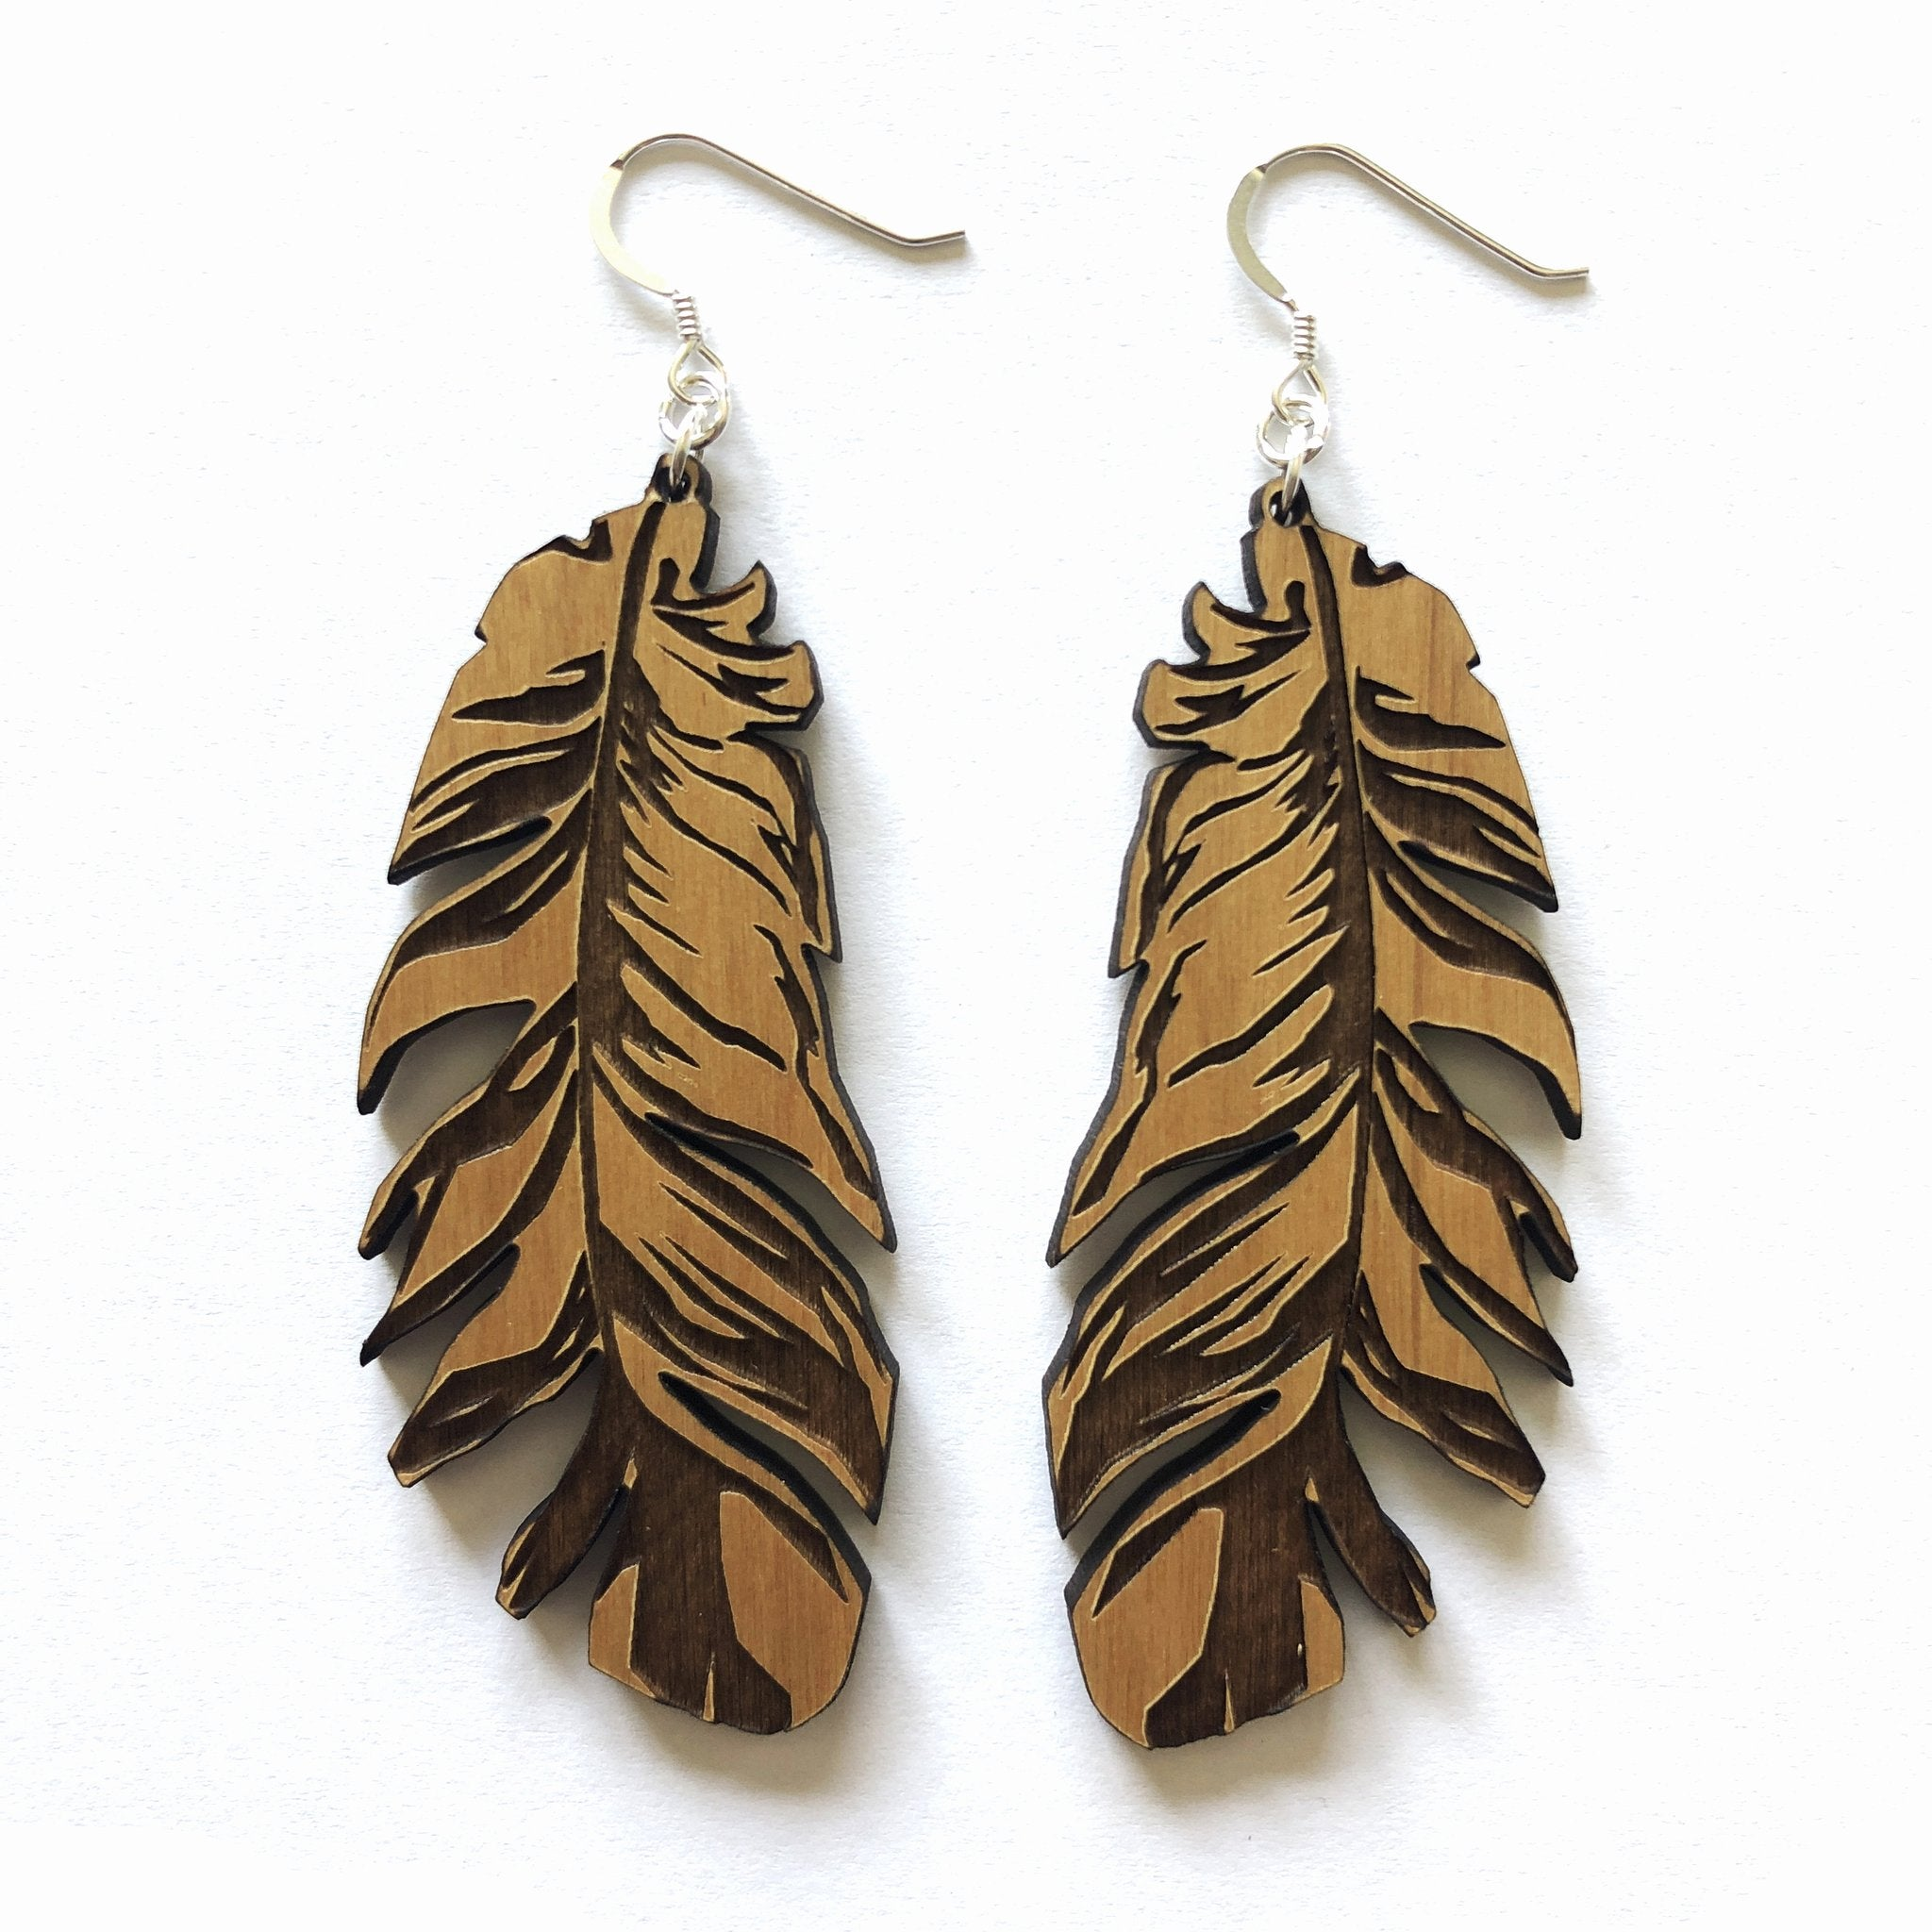 Wood Earrings - Large Feather